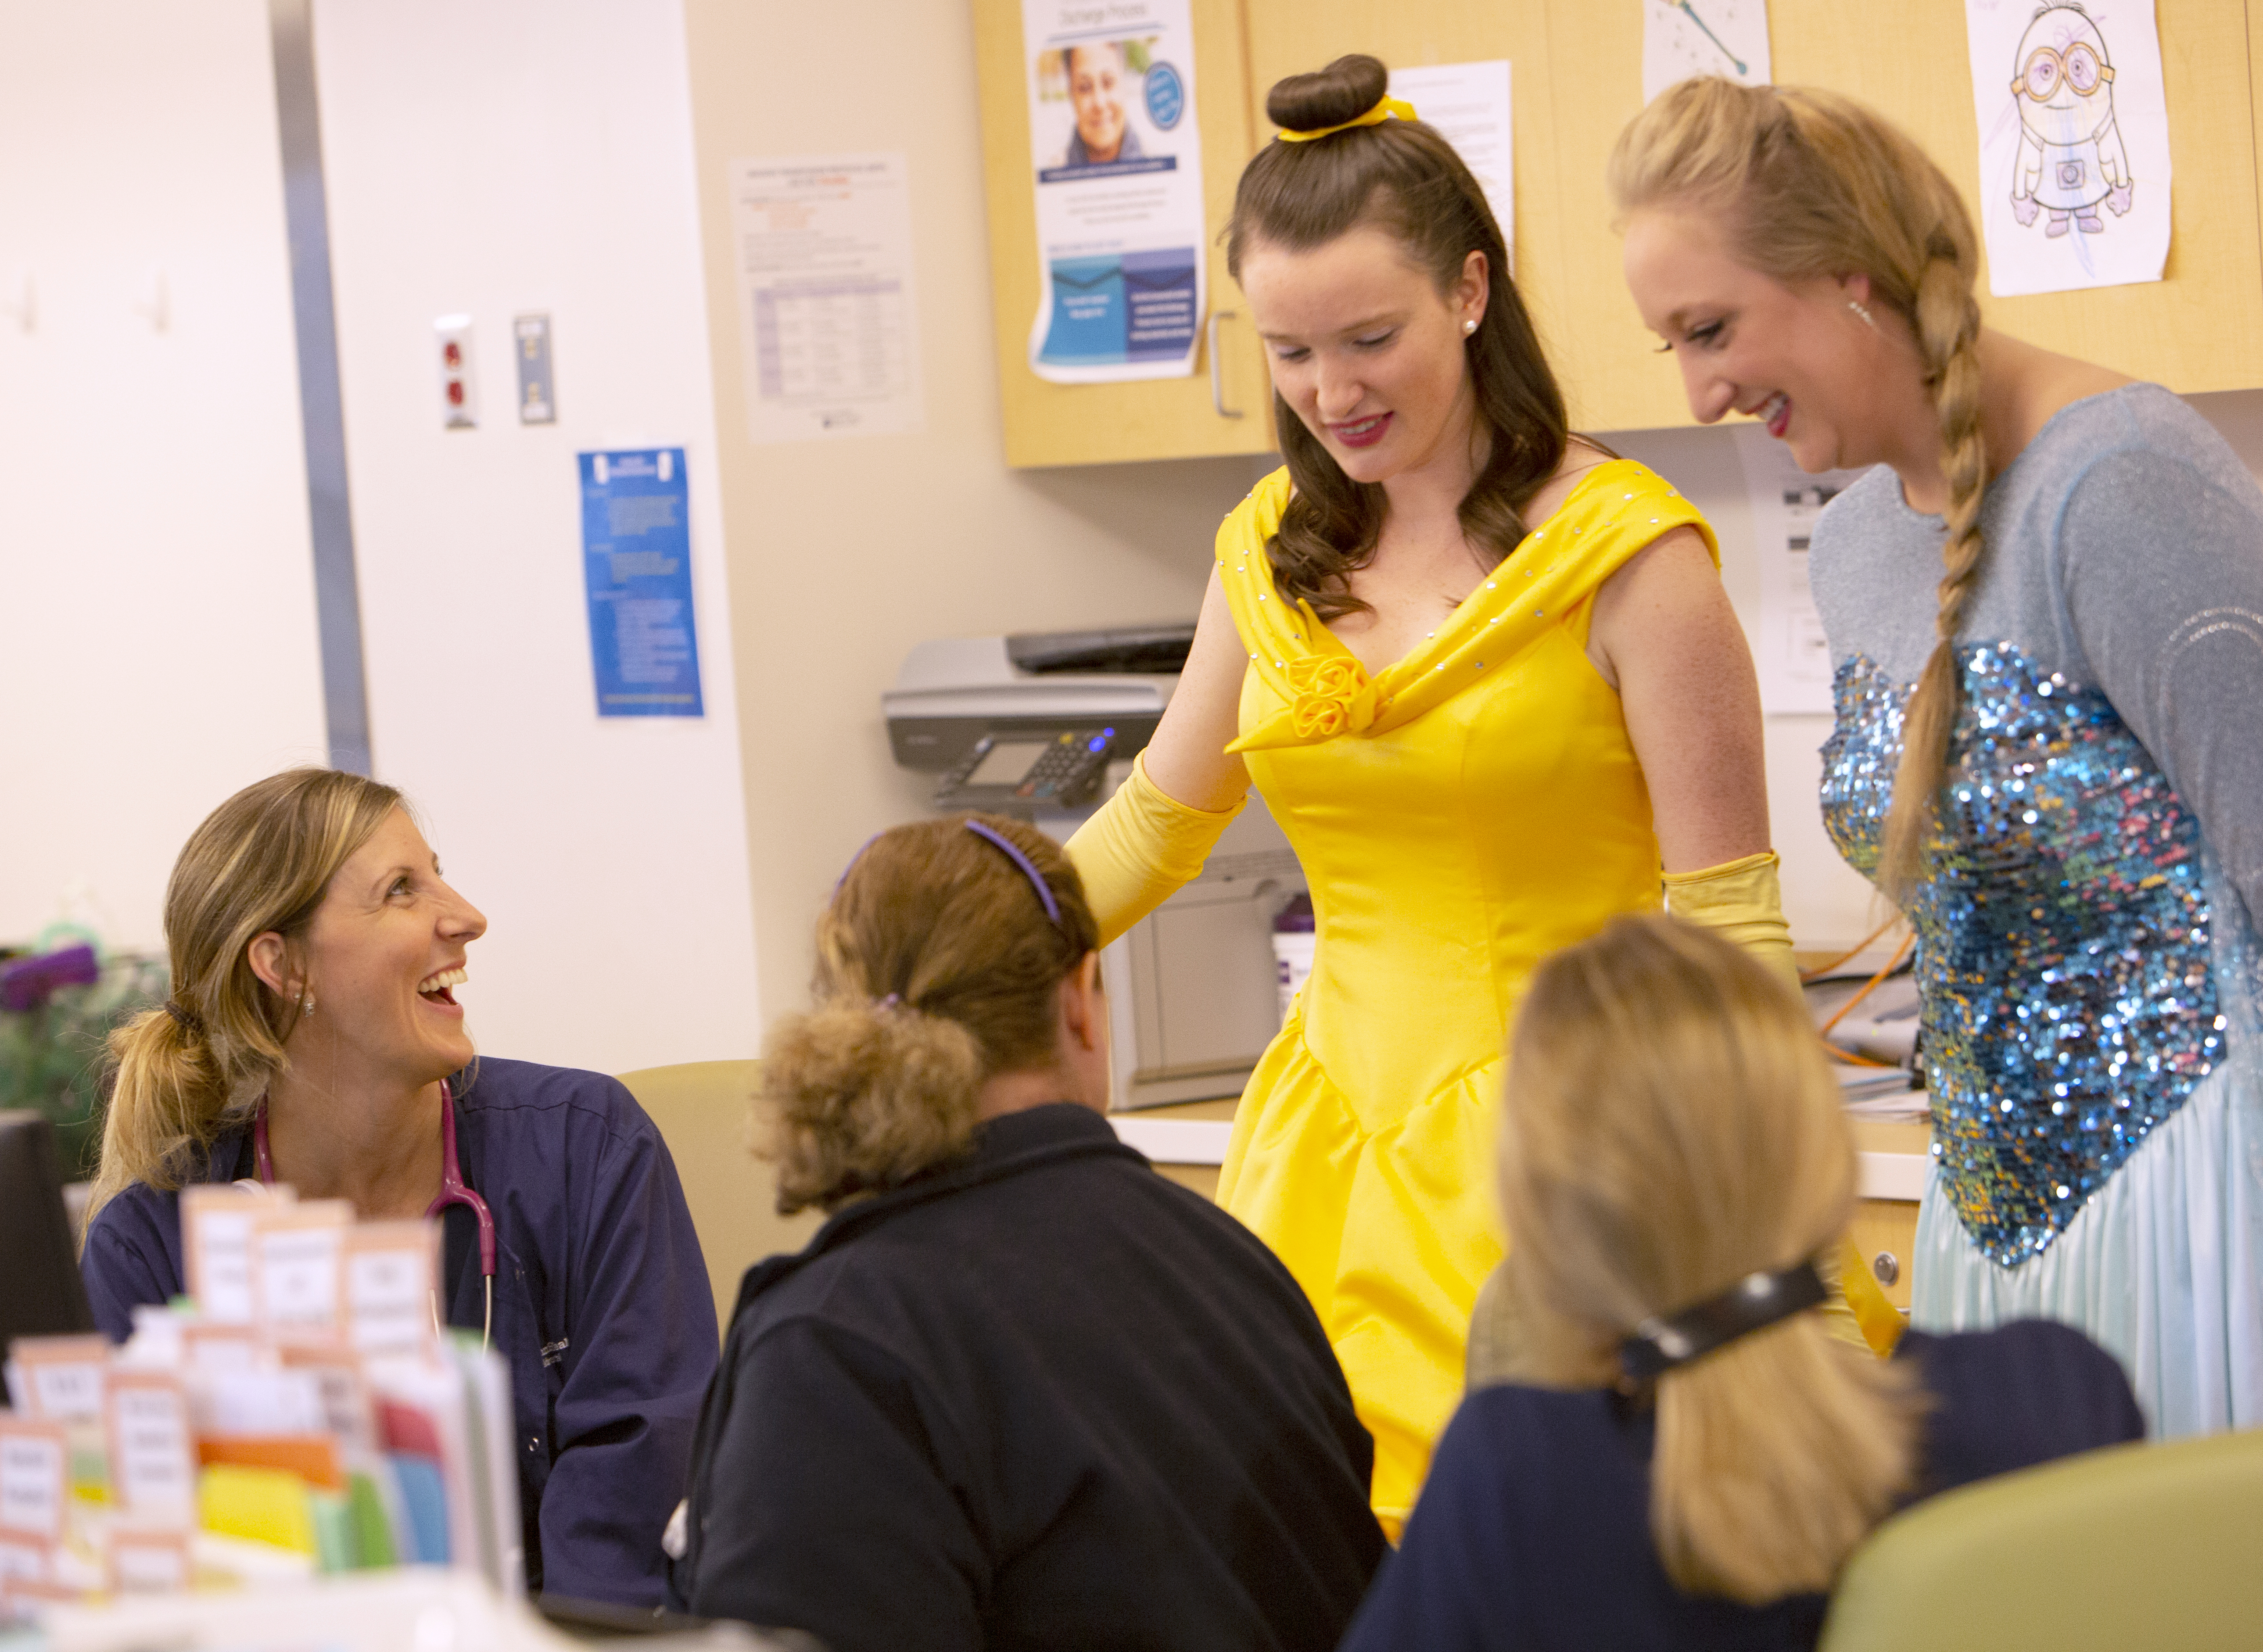 Two women dressed as princesses stand and talk to three nurses at Penn State Children's Hospital. The nurses are sitting in a nurse's station room. The woman on the far-left is smiling. The other two nurses are seen from behind. A copy machine is visible behind one of the princesses.